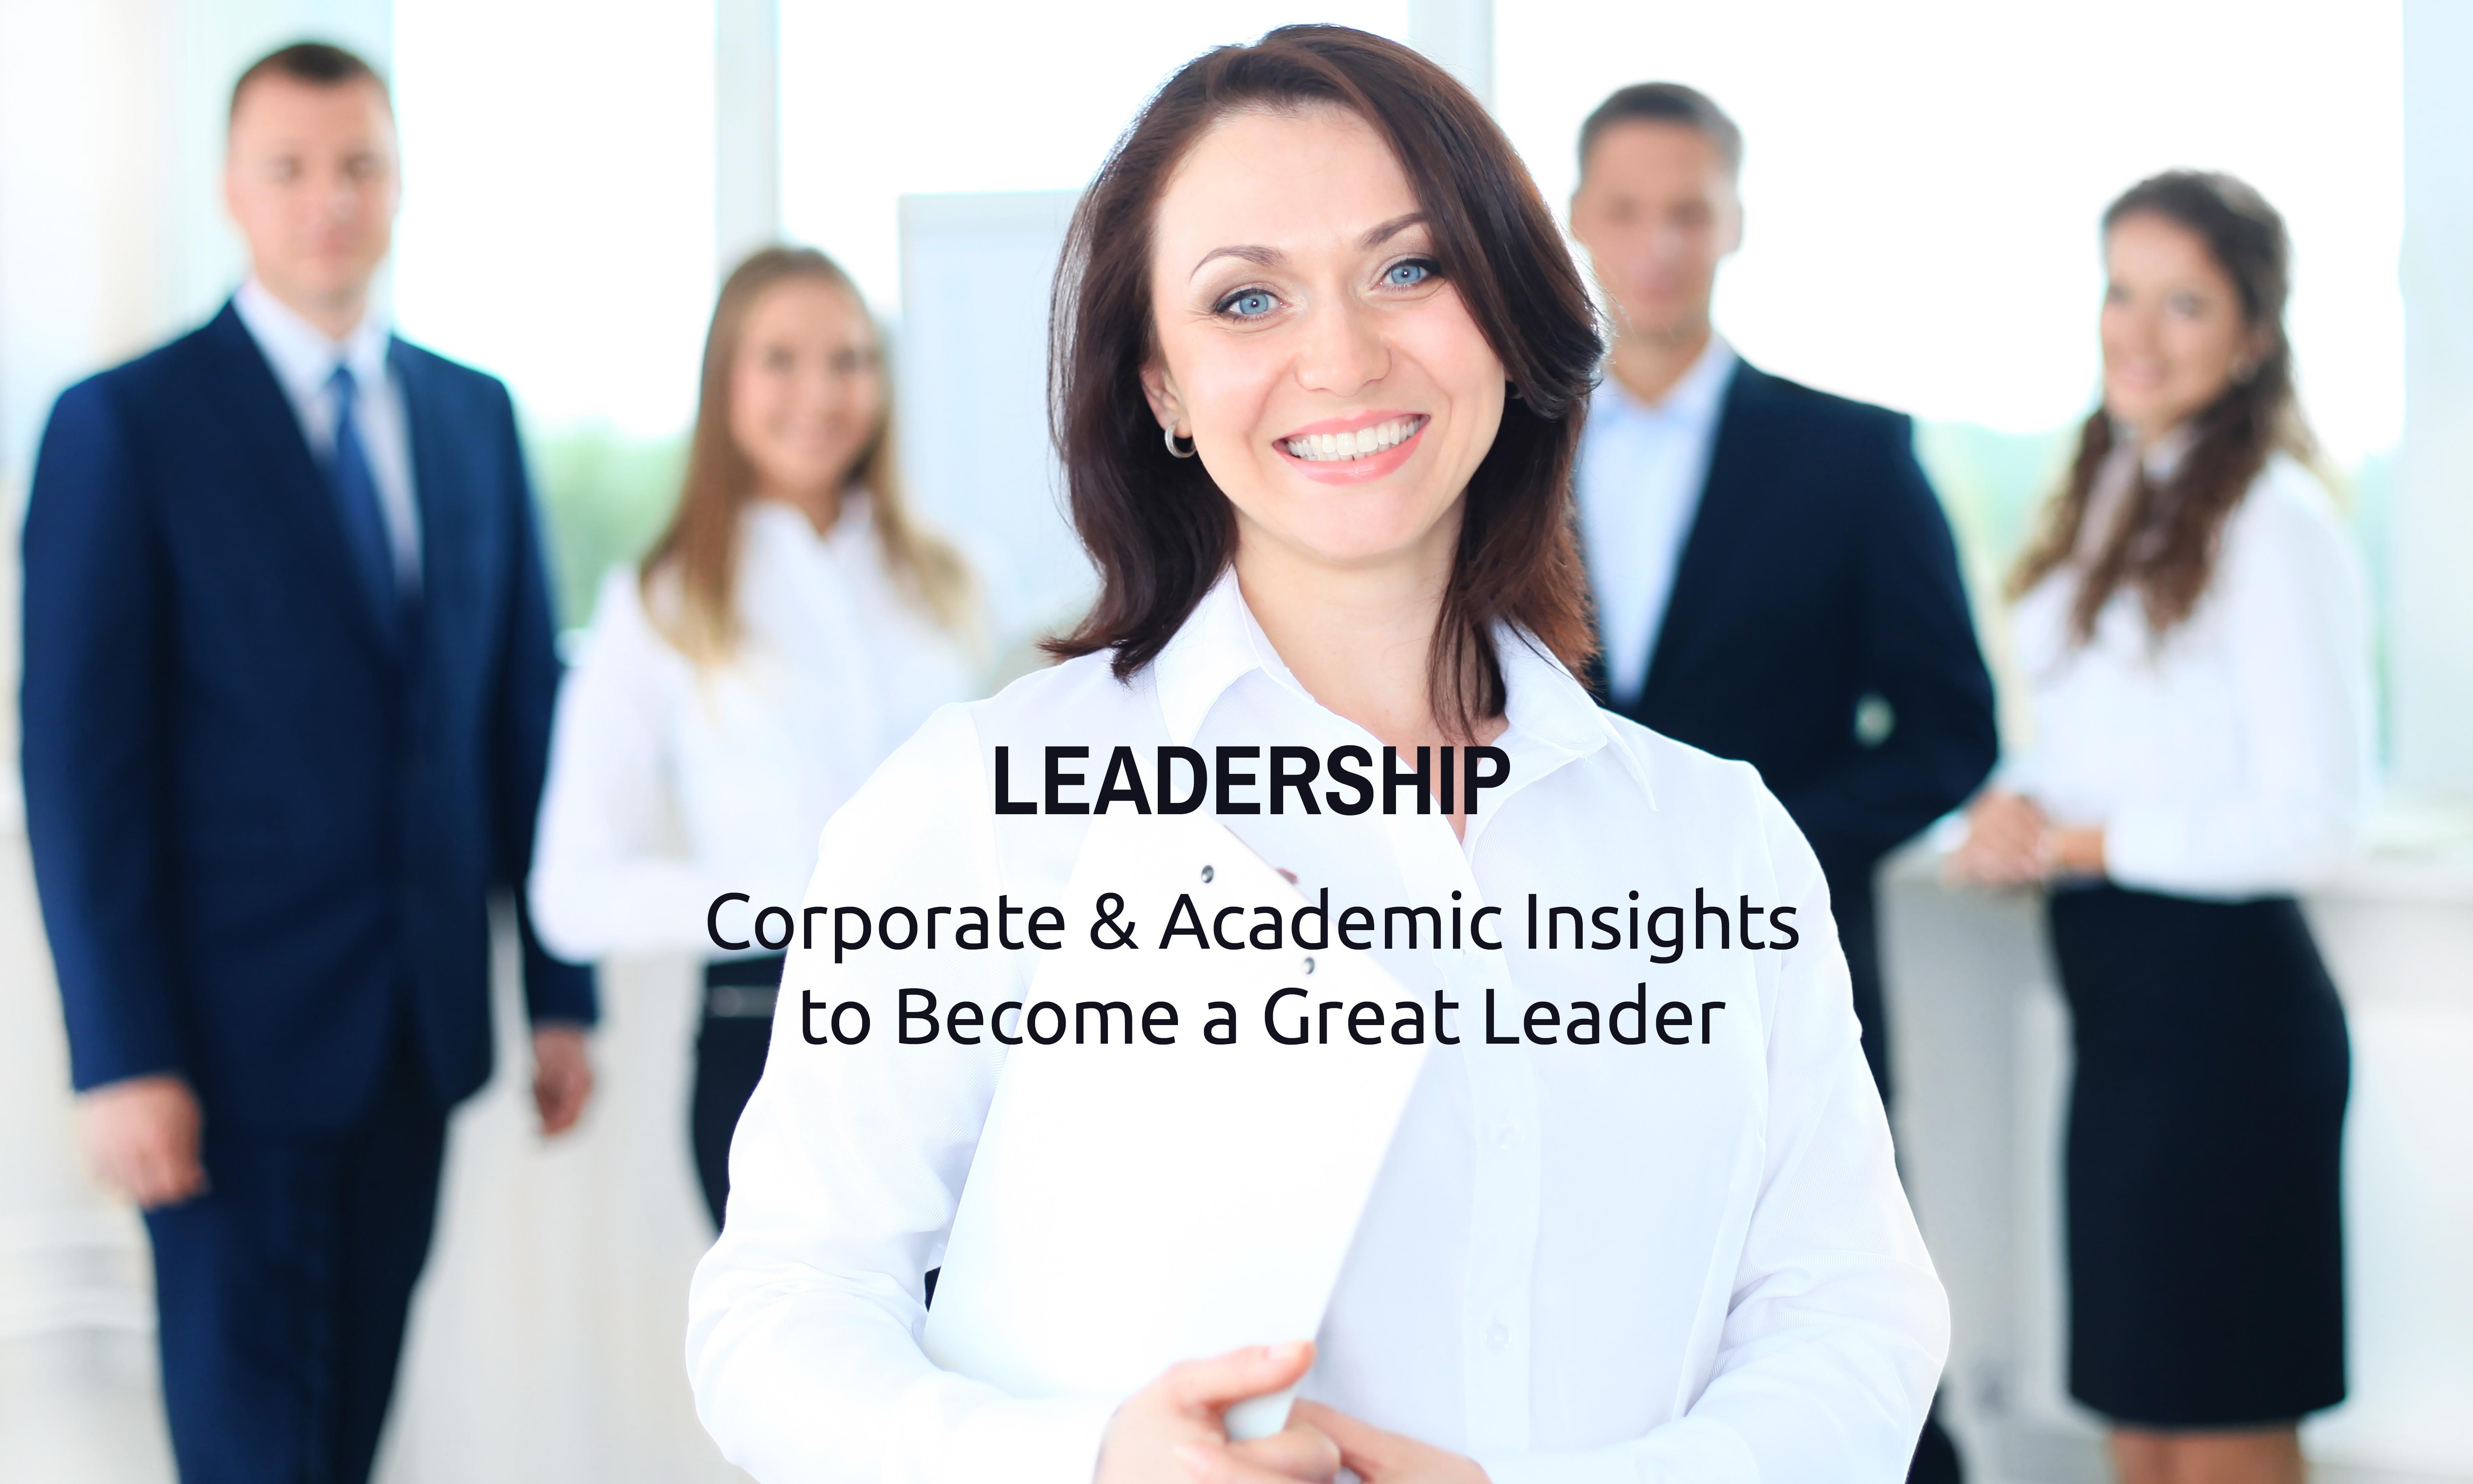 Corporate & Academic Insights to Become an In